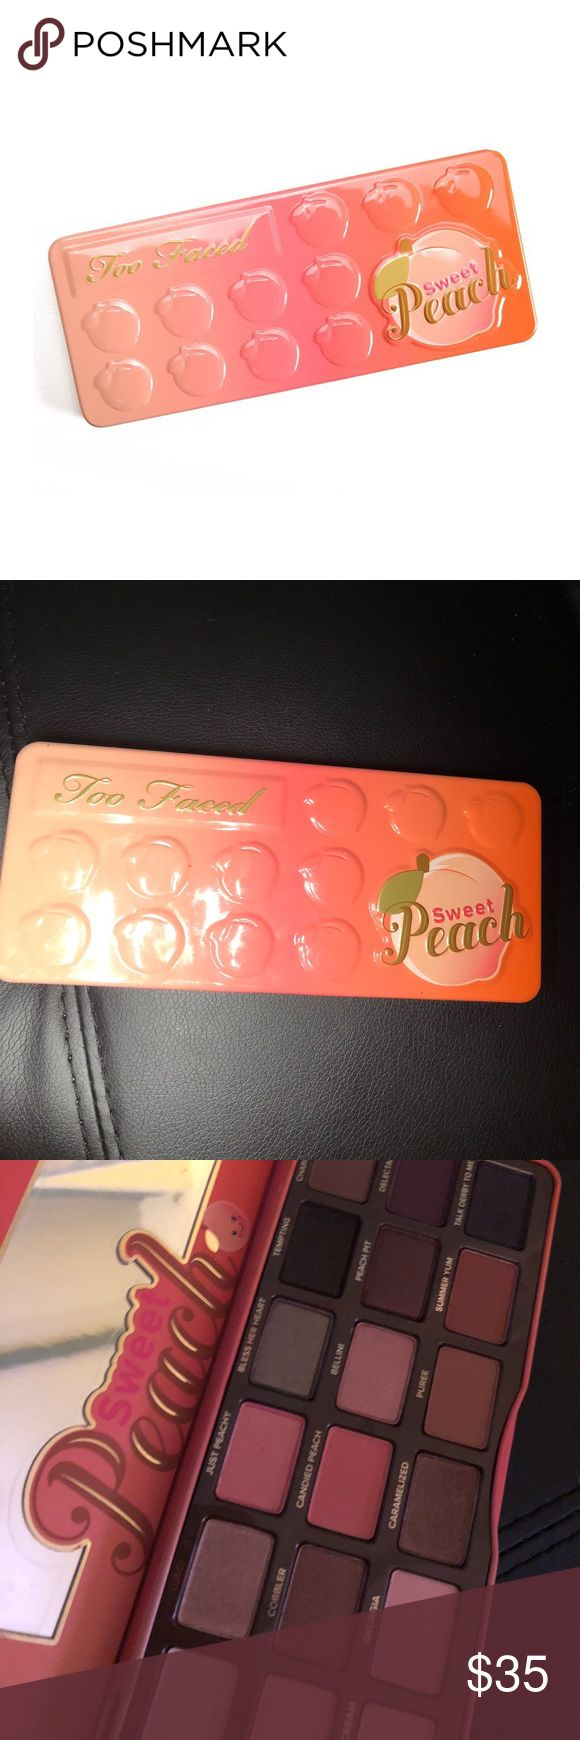 Too Faced Sweet Peach Palette Authentic! I bought 2 off these because they were sold out so long, they are no longer limited edition and I don't use the first as much as I thought I would so no need to have 2. Purchased from Sephora. Doesn't come with box or tutorials, and I will be recording myself packing and shipping items at the post office🍑No trades. Price is firm. Bundle and save on shipping. Too Faced Makeup Eyeshadow